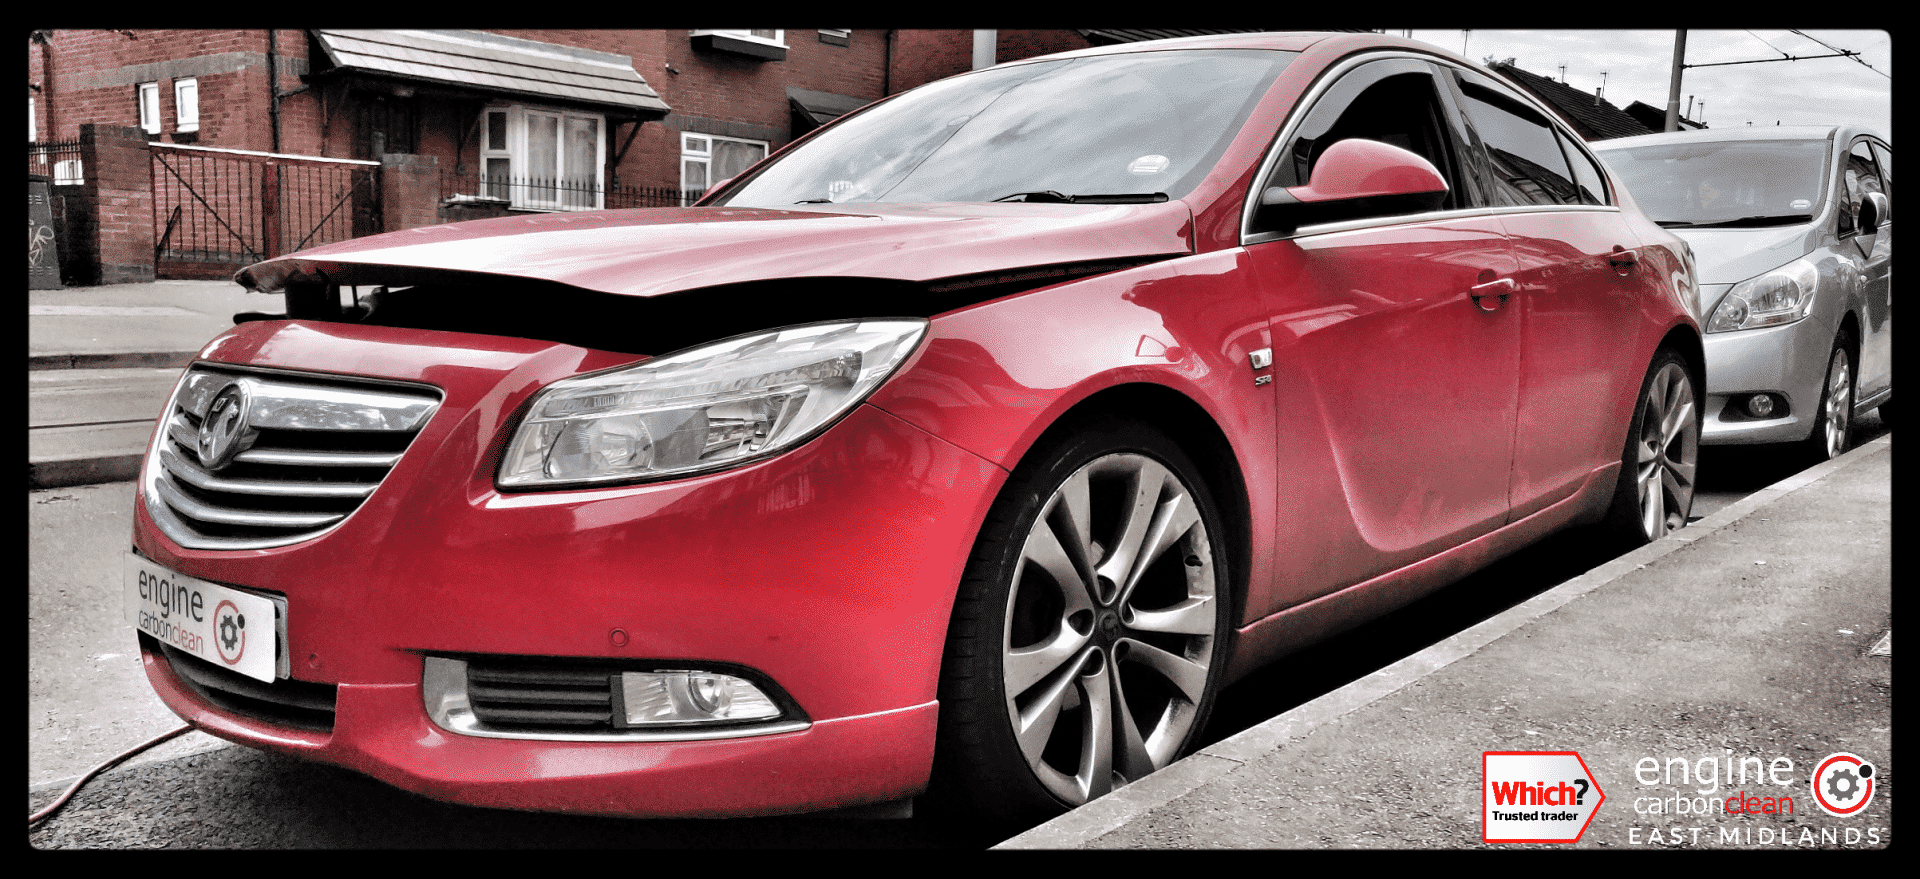 DPF issues from a failing pressure sensor on this Vauxhall Insignia 2.0 TDCI (2013 – 113,446 miles)